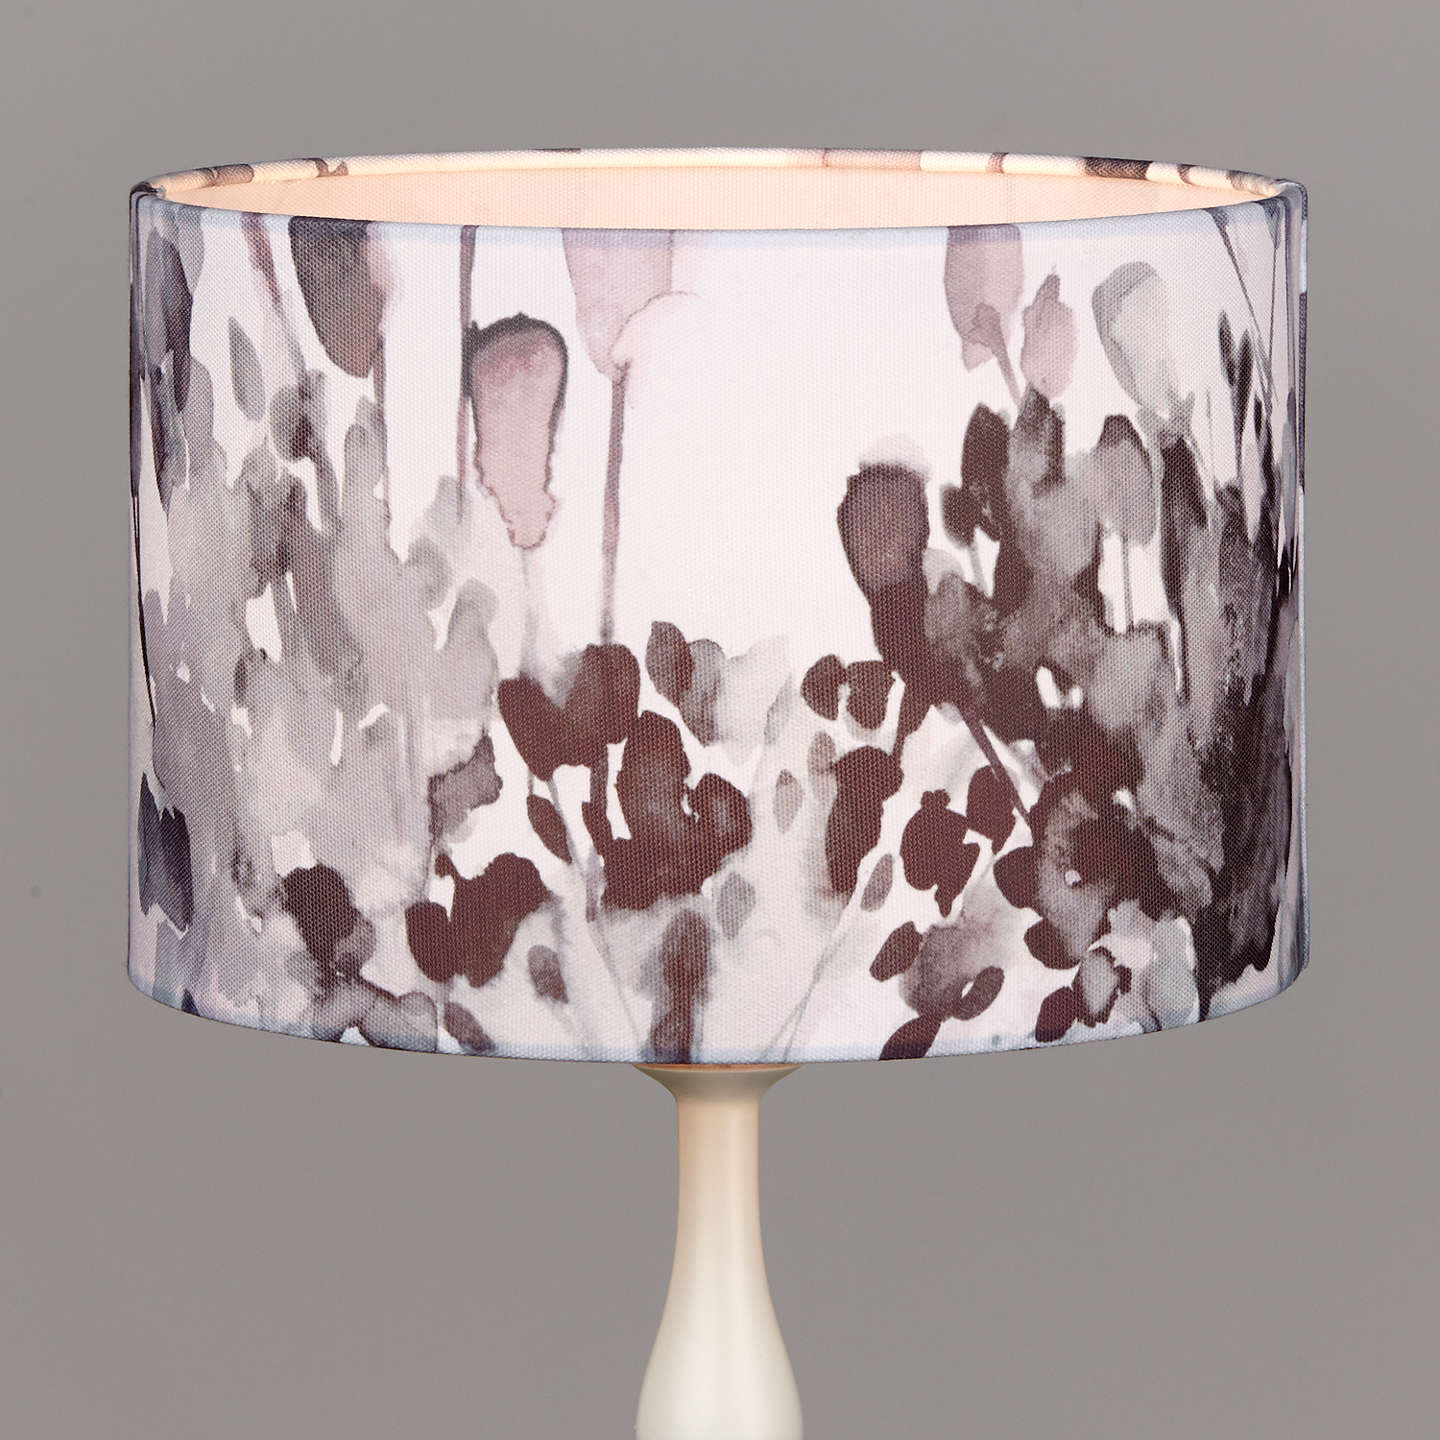 Croft collection laila lampshade at john lewis buycroft collection laila lampshade multi dia 30cm online at johnlewis aloadofball Gallery